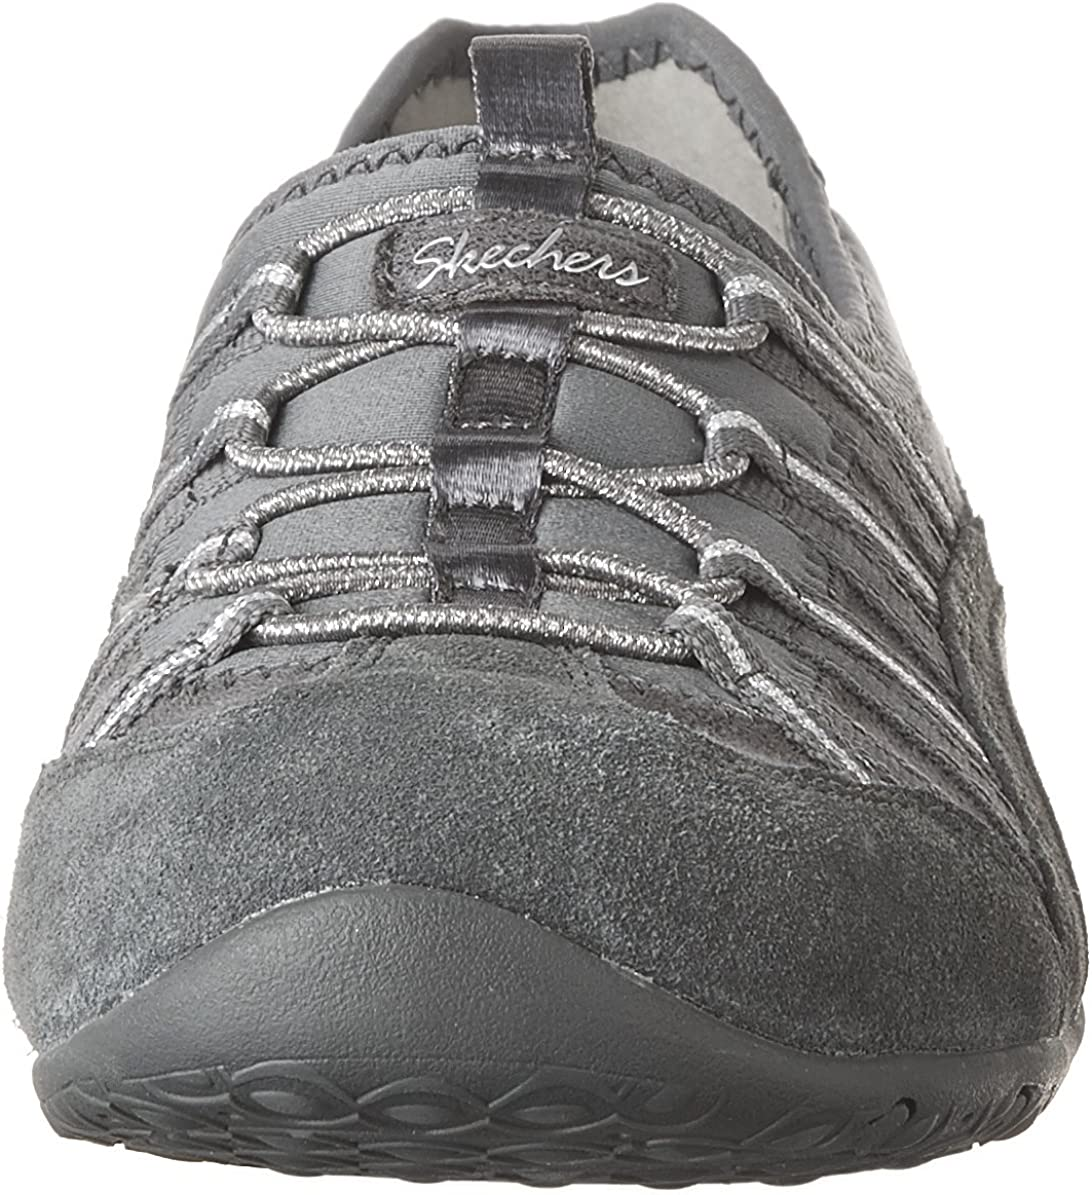 Skechers Unity Beaming Womens Slip On Sneakers